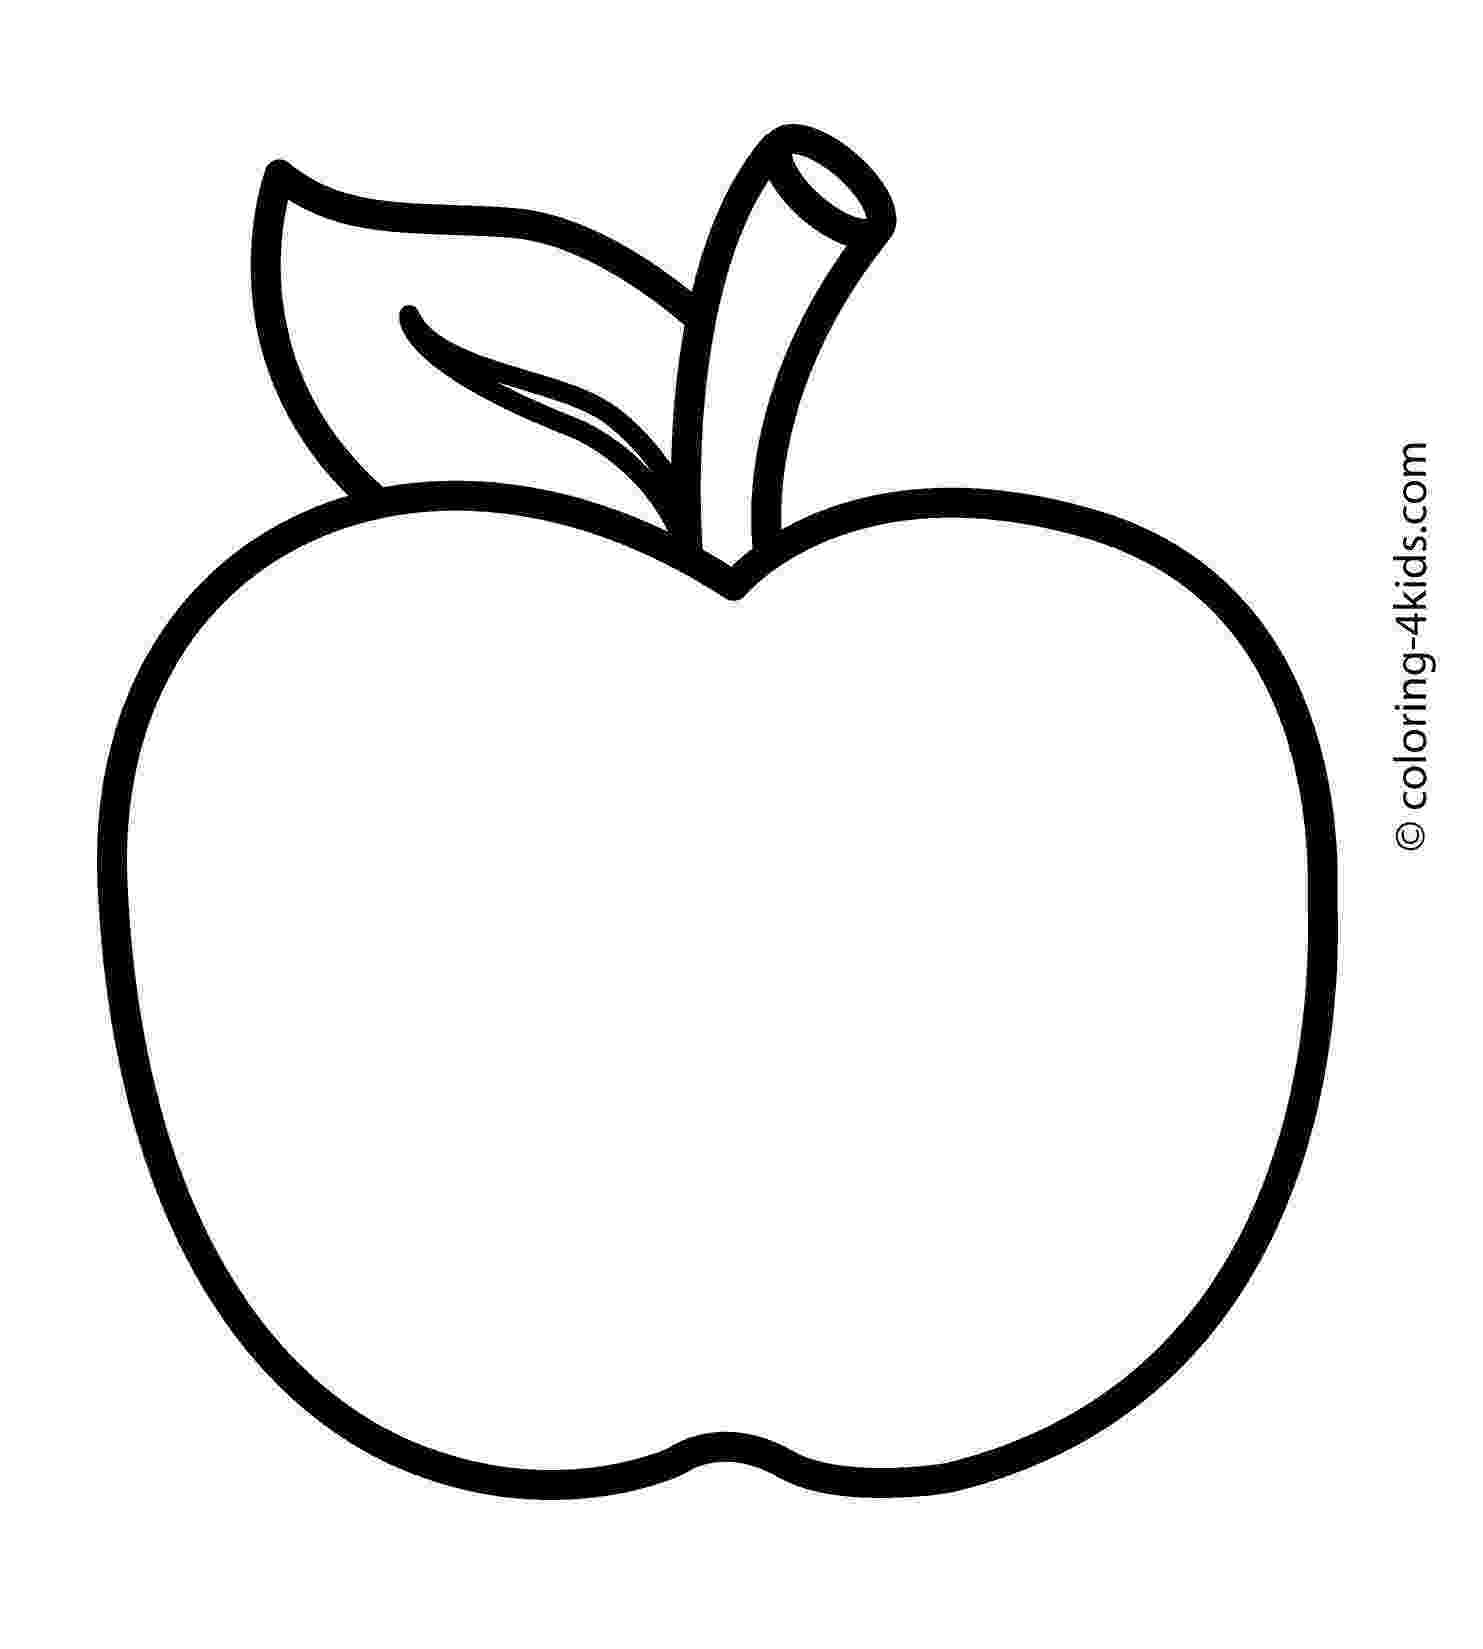 apple picture for kids pin by jan van der voort on npp apple coloring apple kids picture for apple